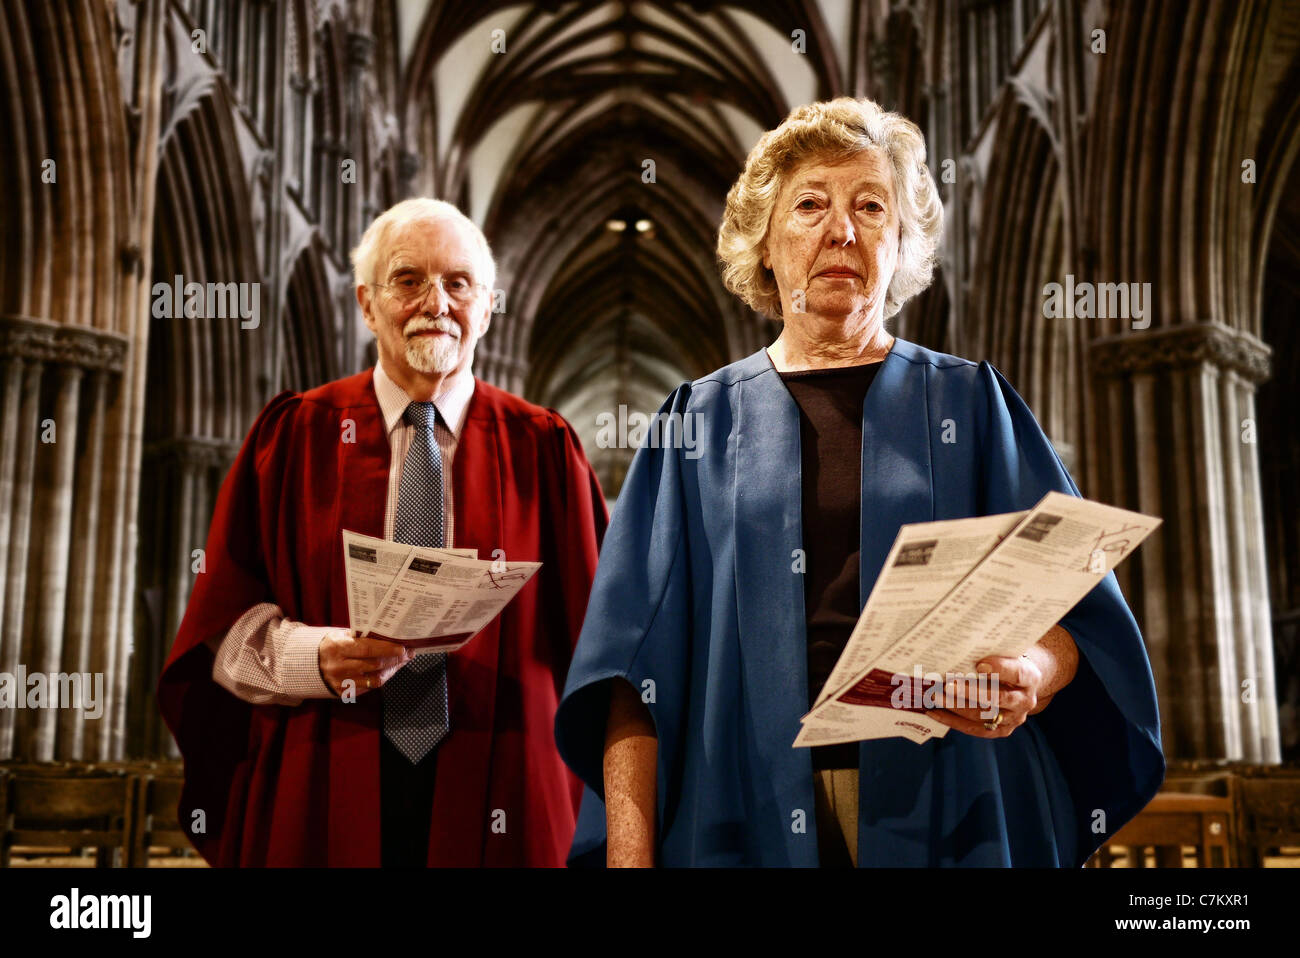 man and woman working as guides in Lichfield Cathedral - Stock Image